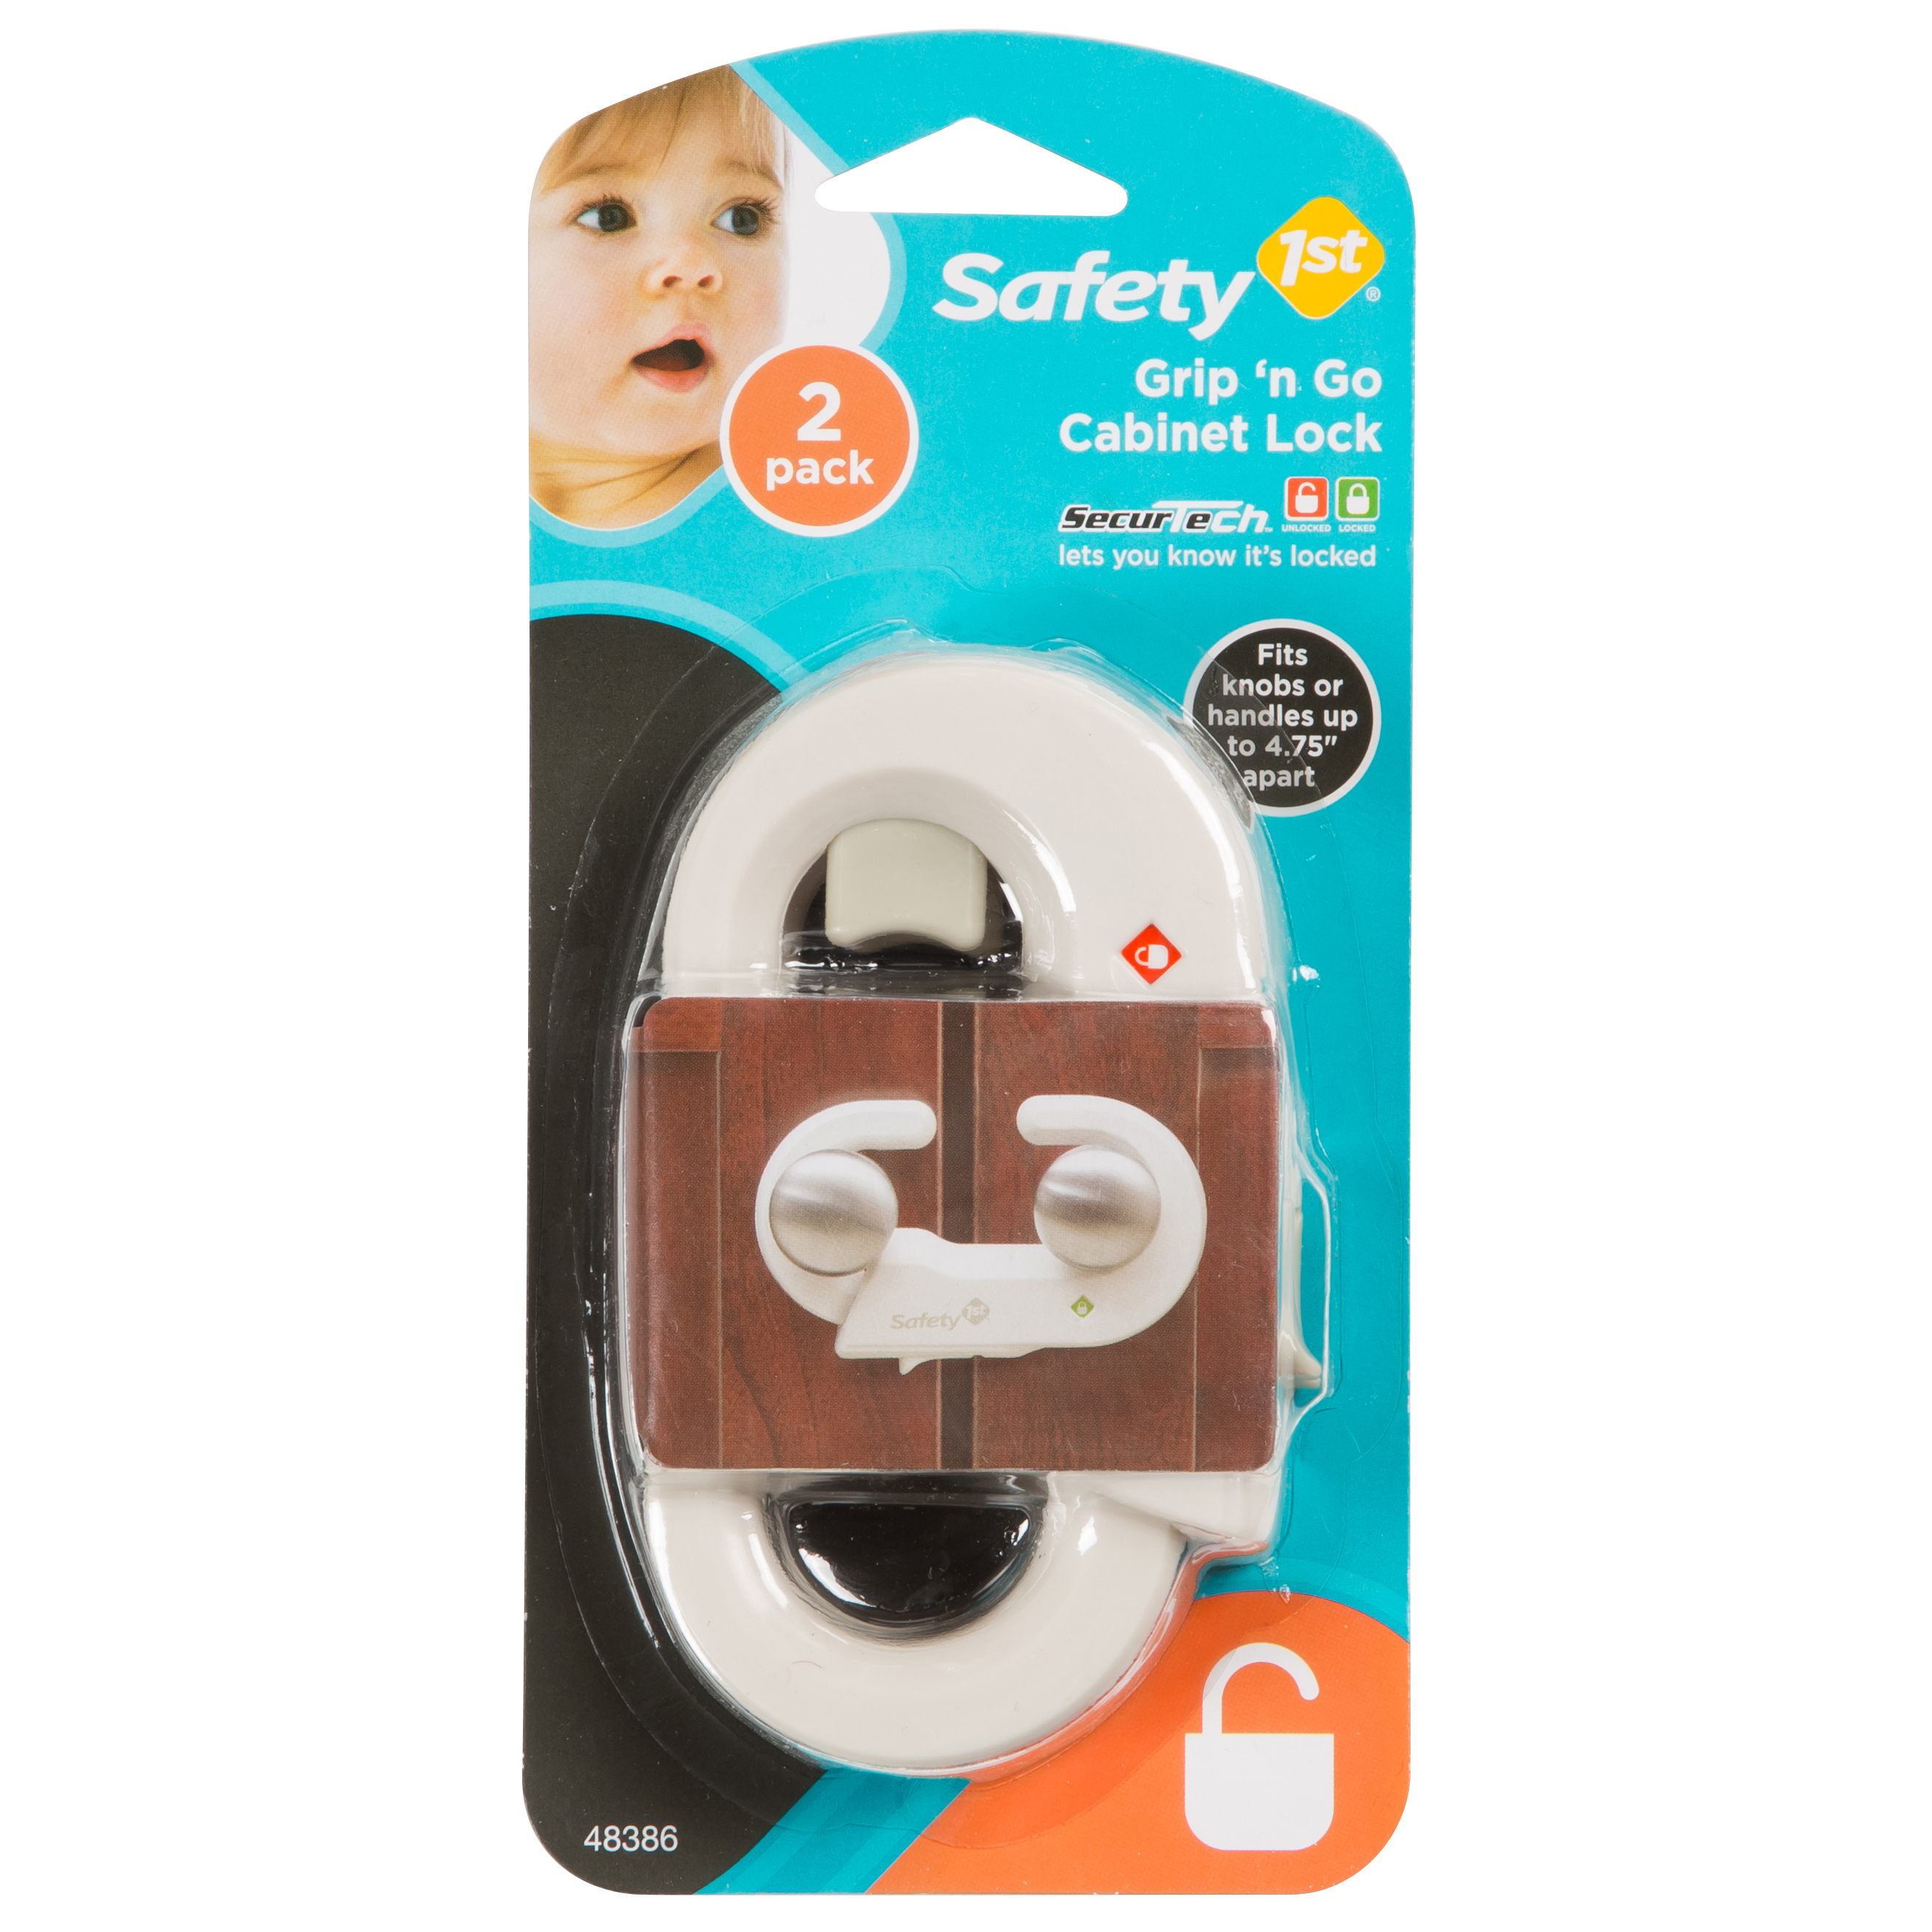 Safety 1st - Grip 'n Go Cabinet Lock 2pk